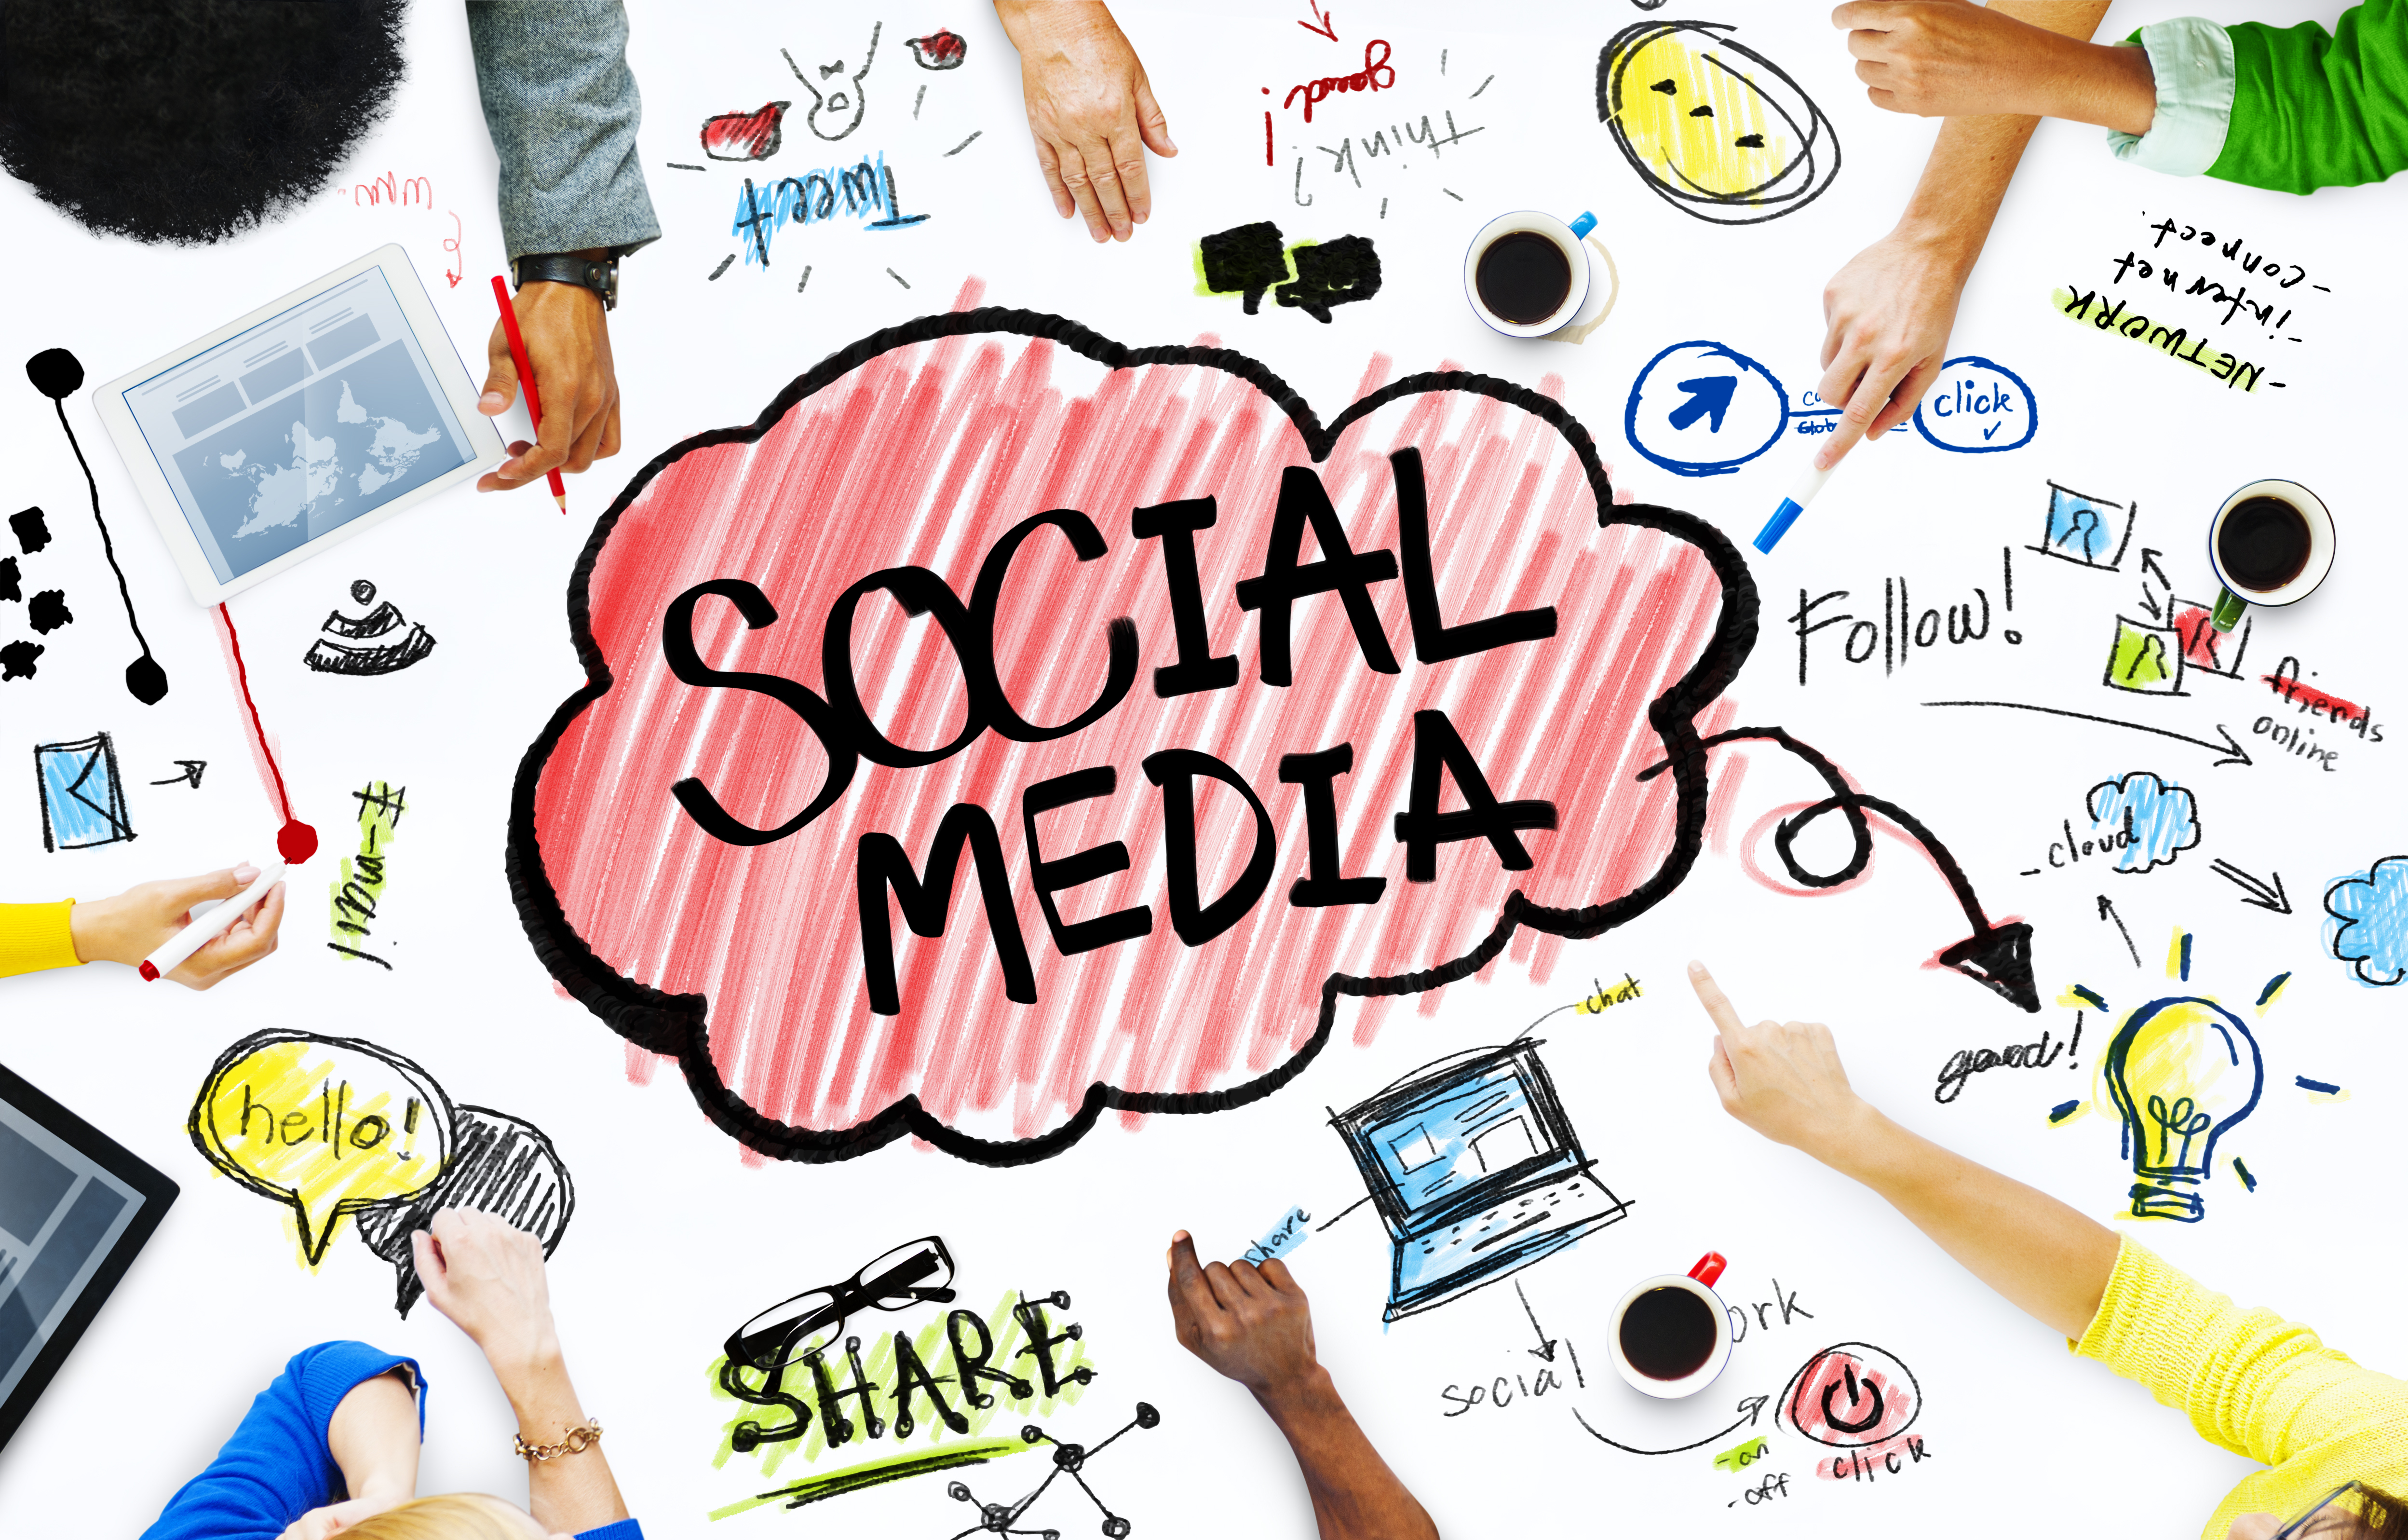 Why choose social media marketing for your business?